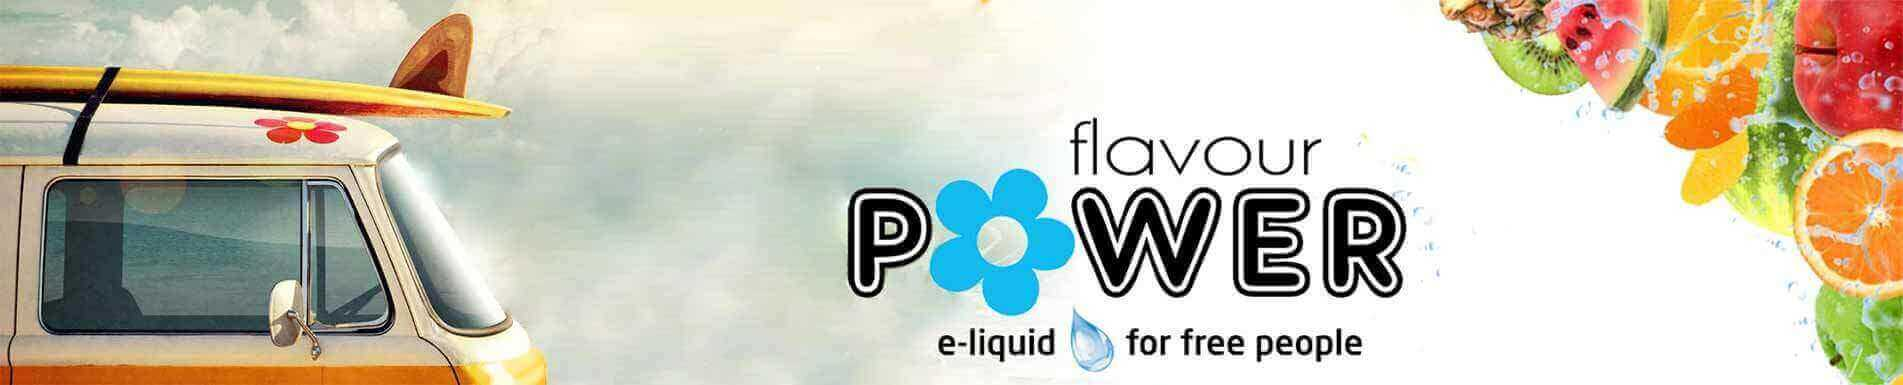 flavour power eliquid 50/50